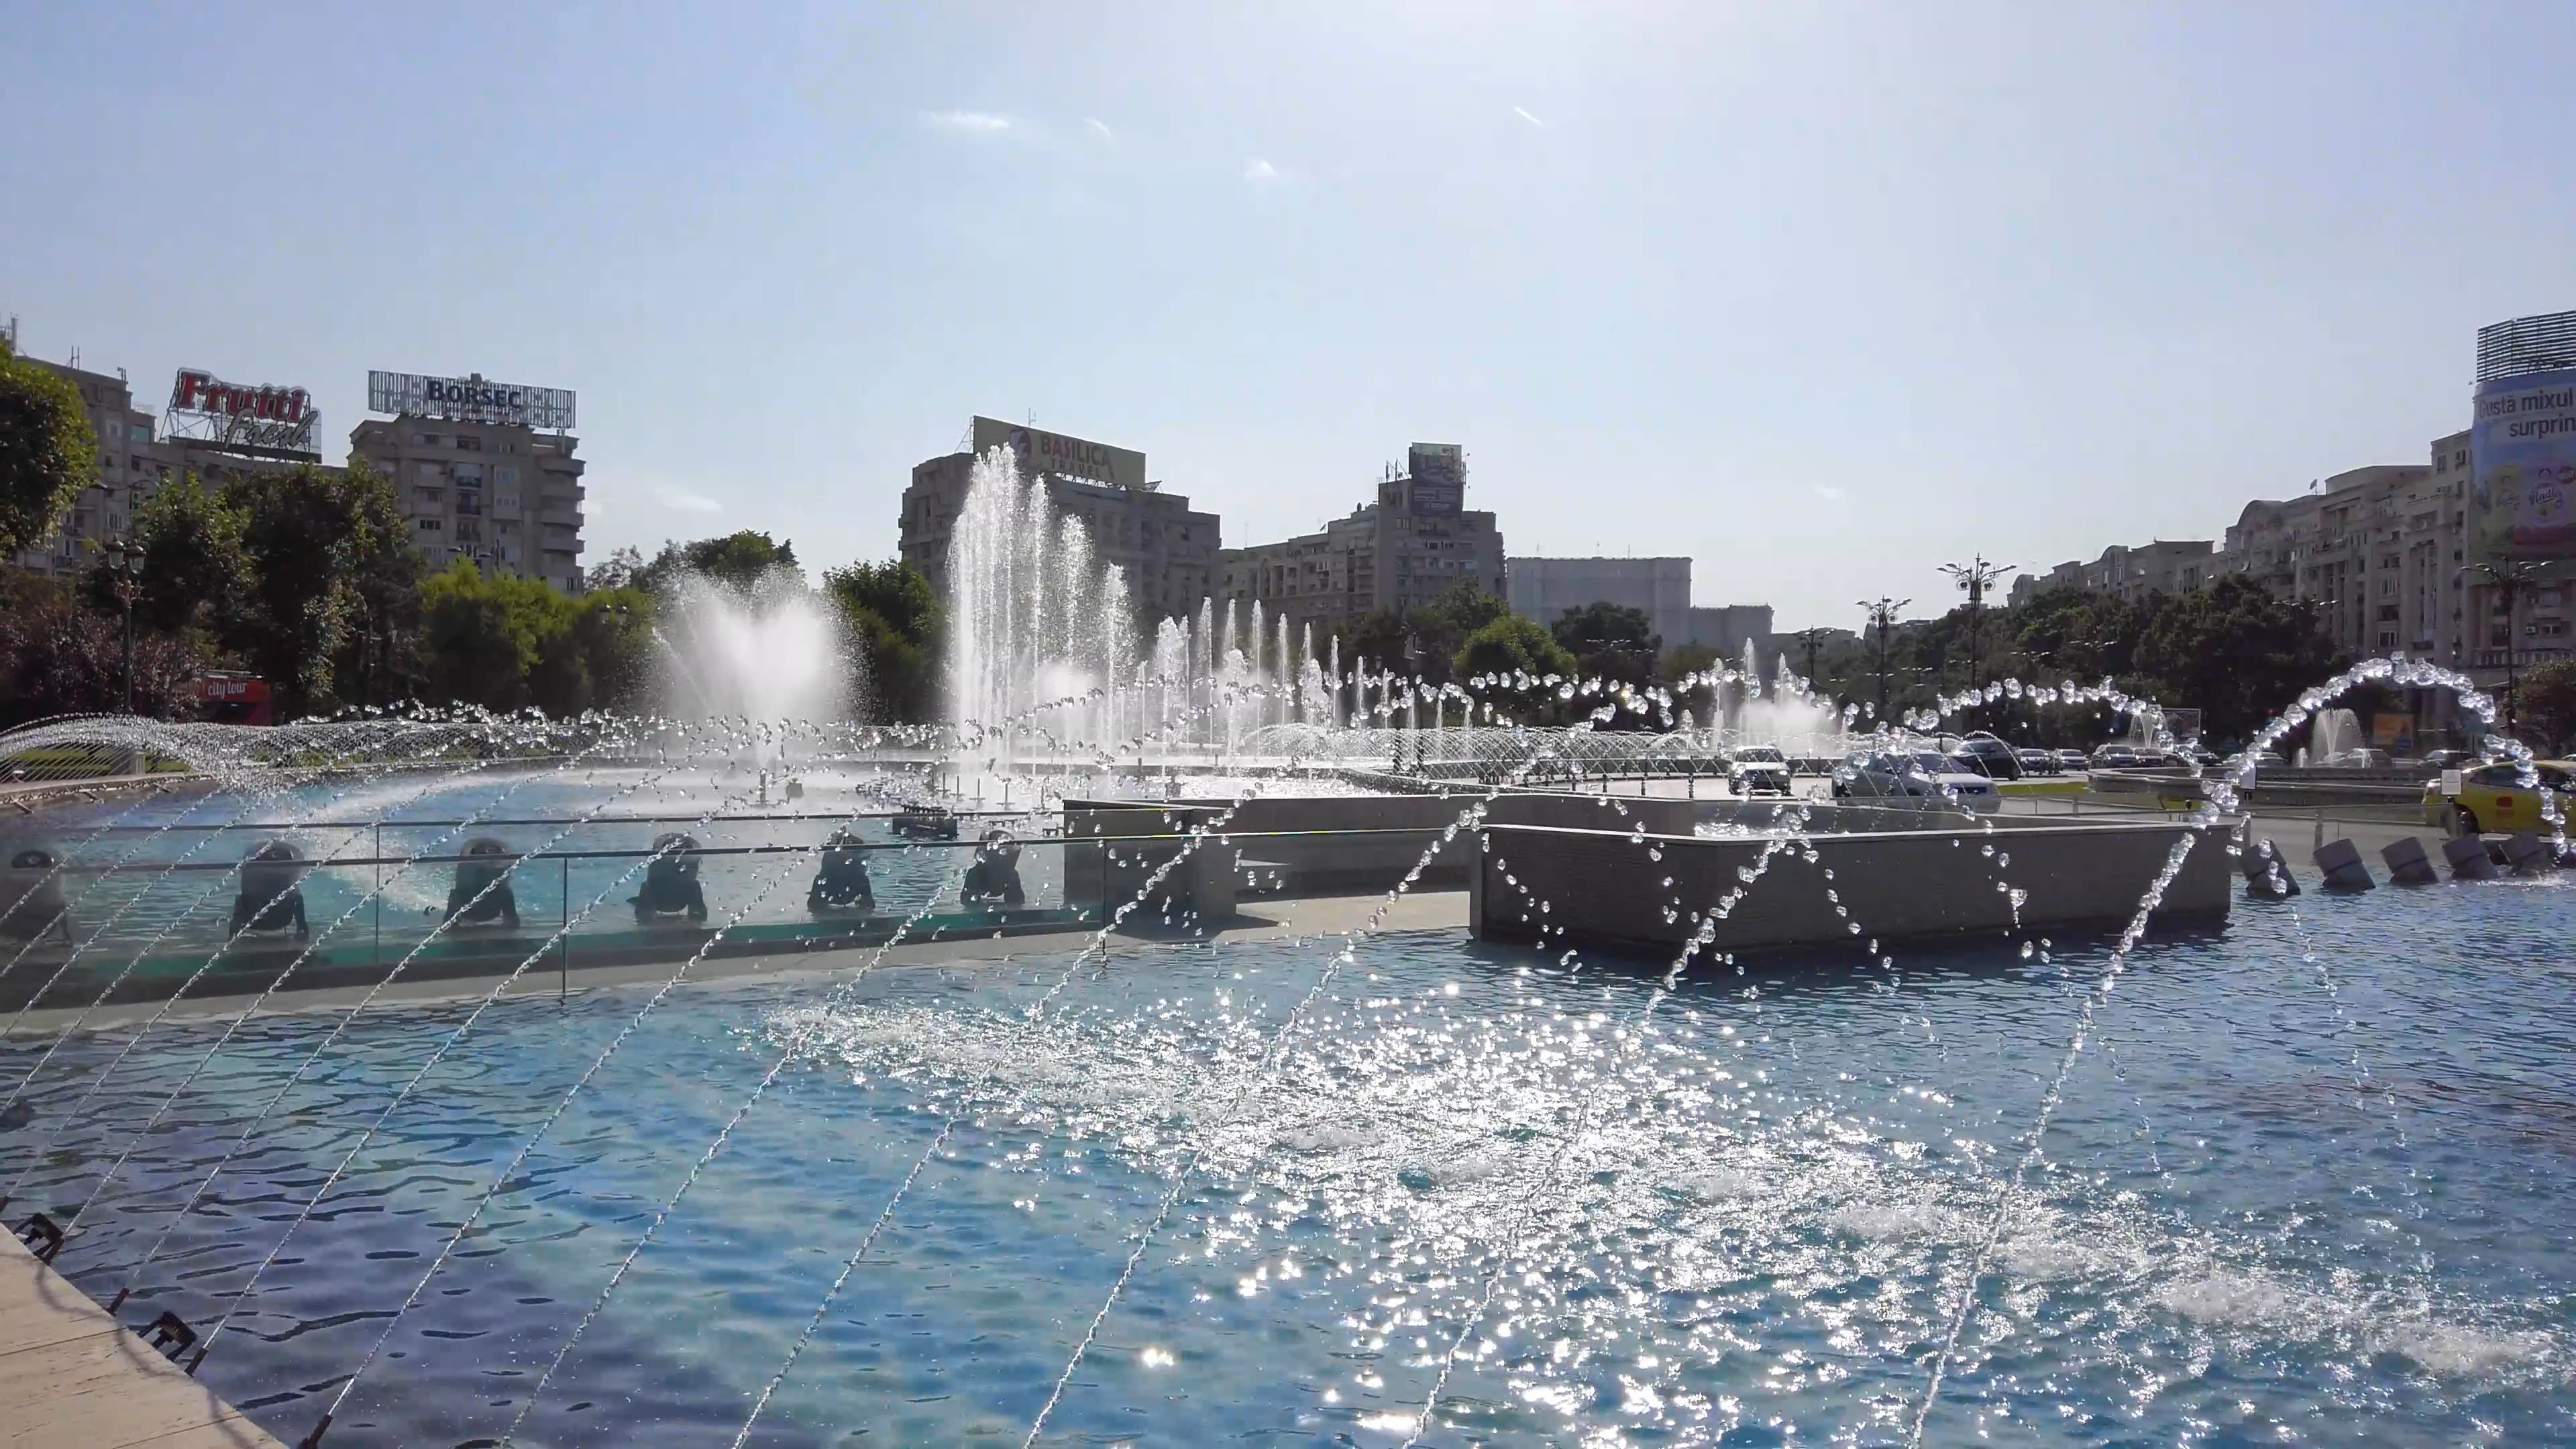 Water fountains in Unirii Square, Bucharest – a relaxation video